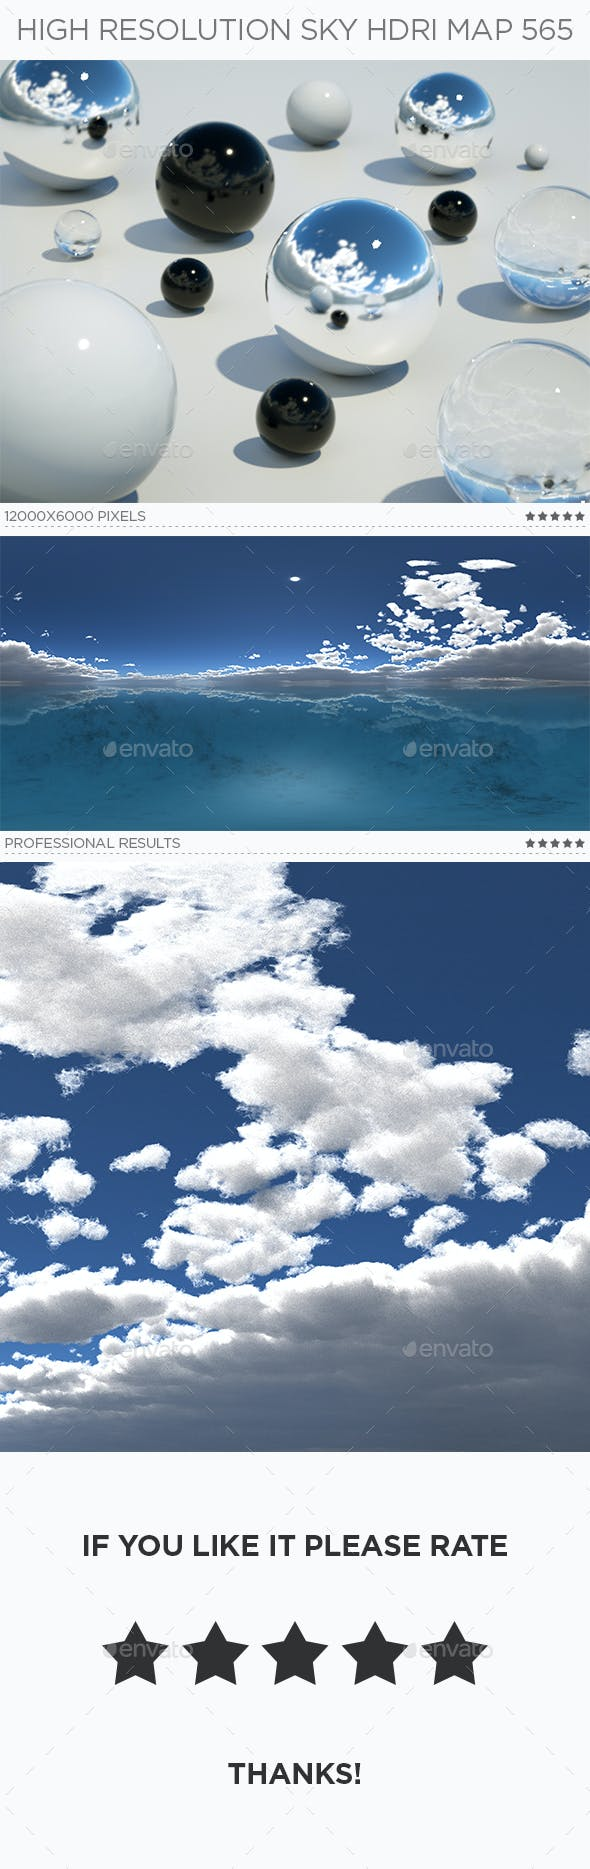 High Resolution Sky HDRi Map 565 - 3DOcean Item for Sale